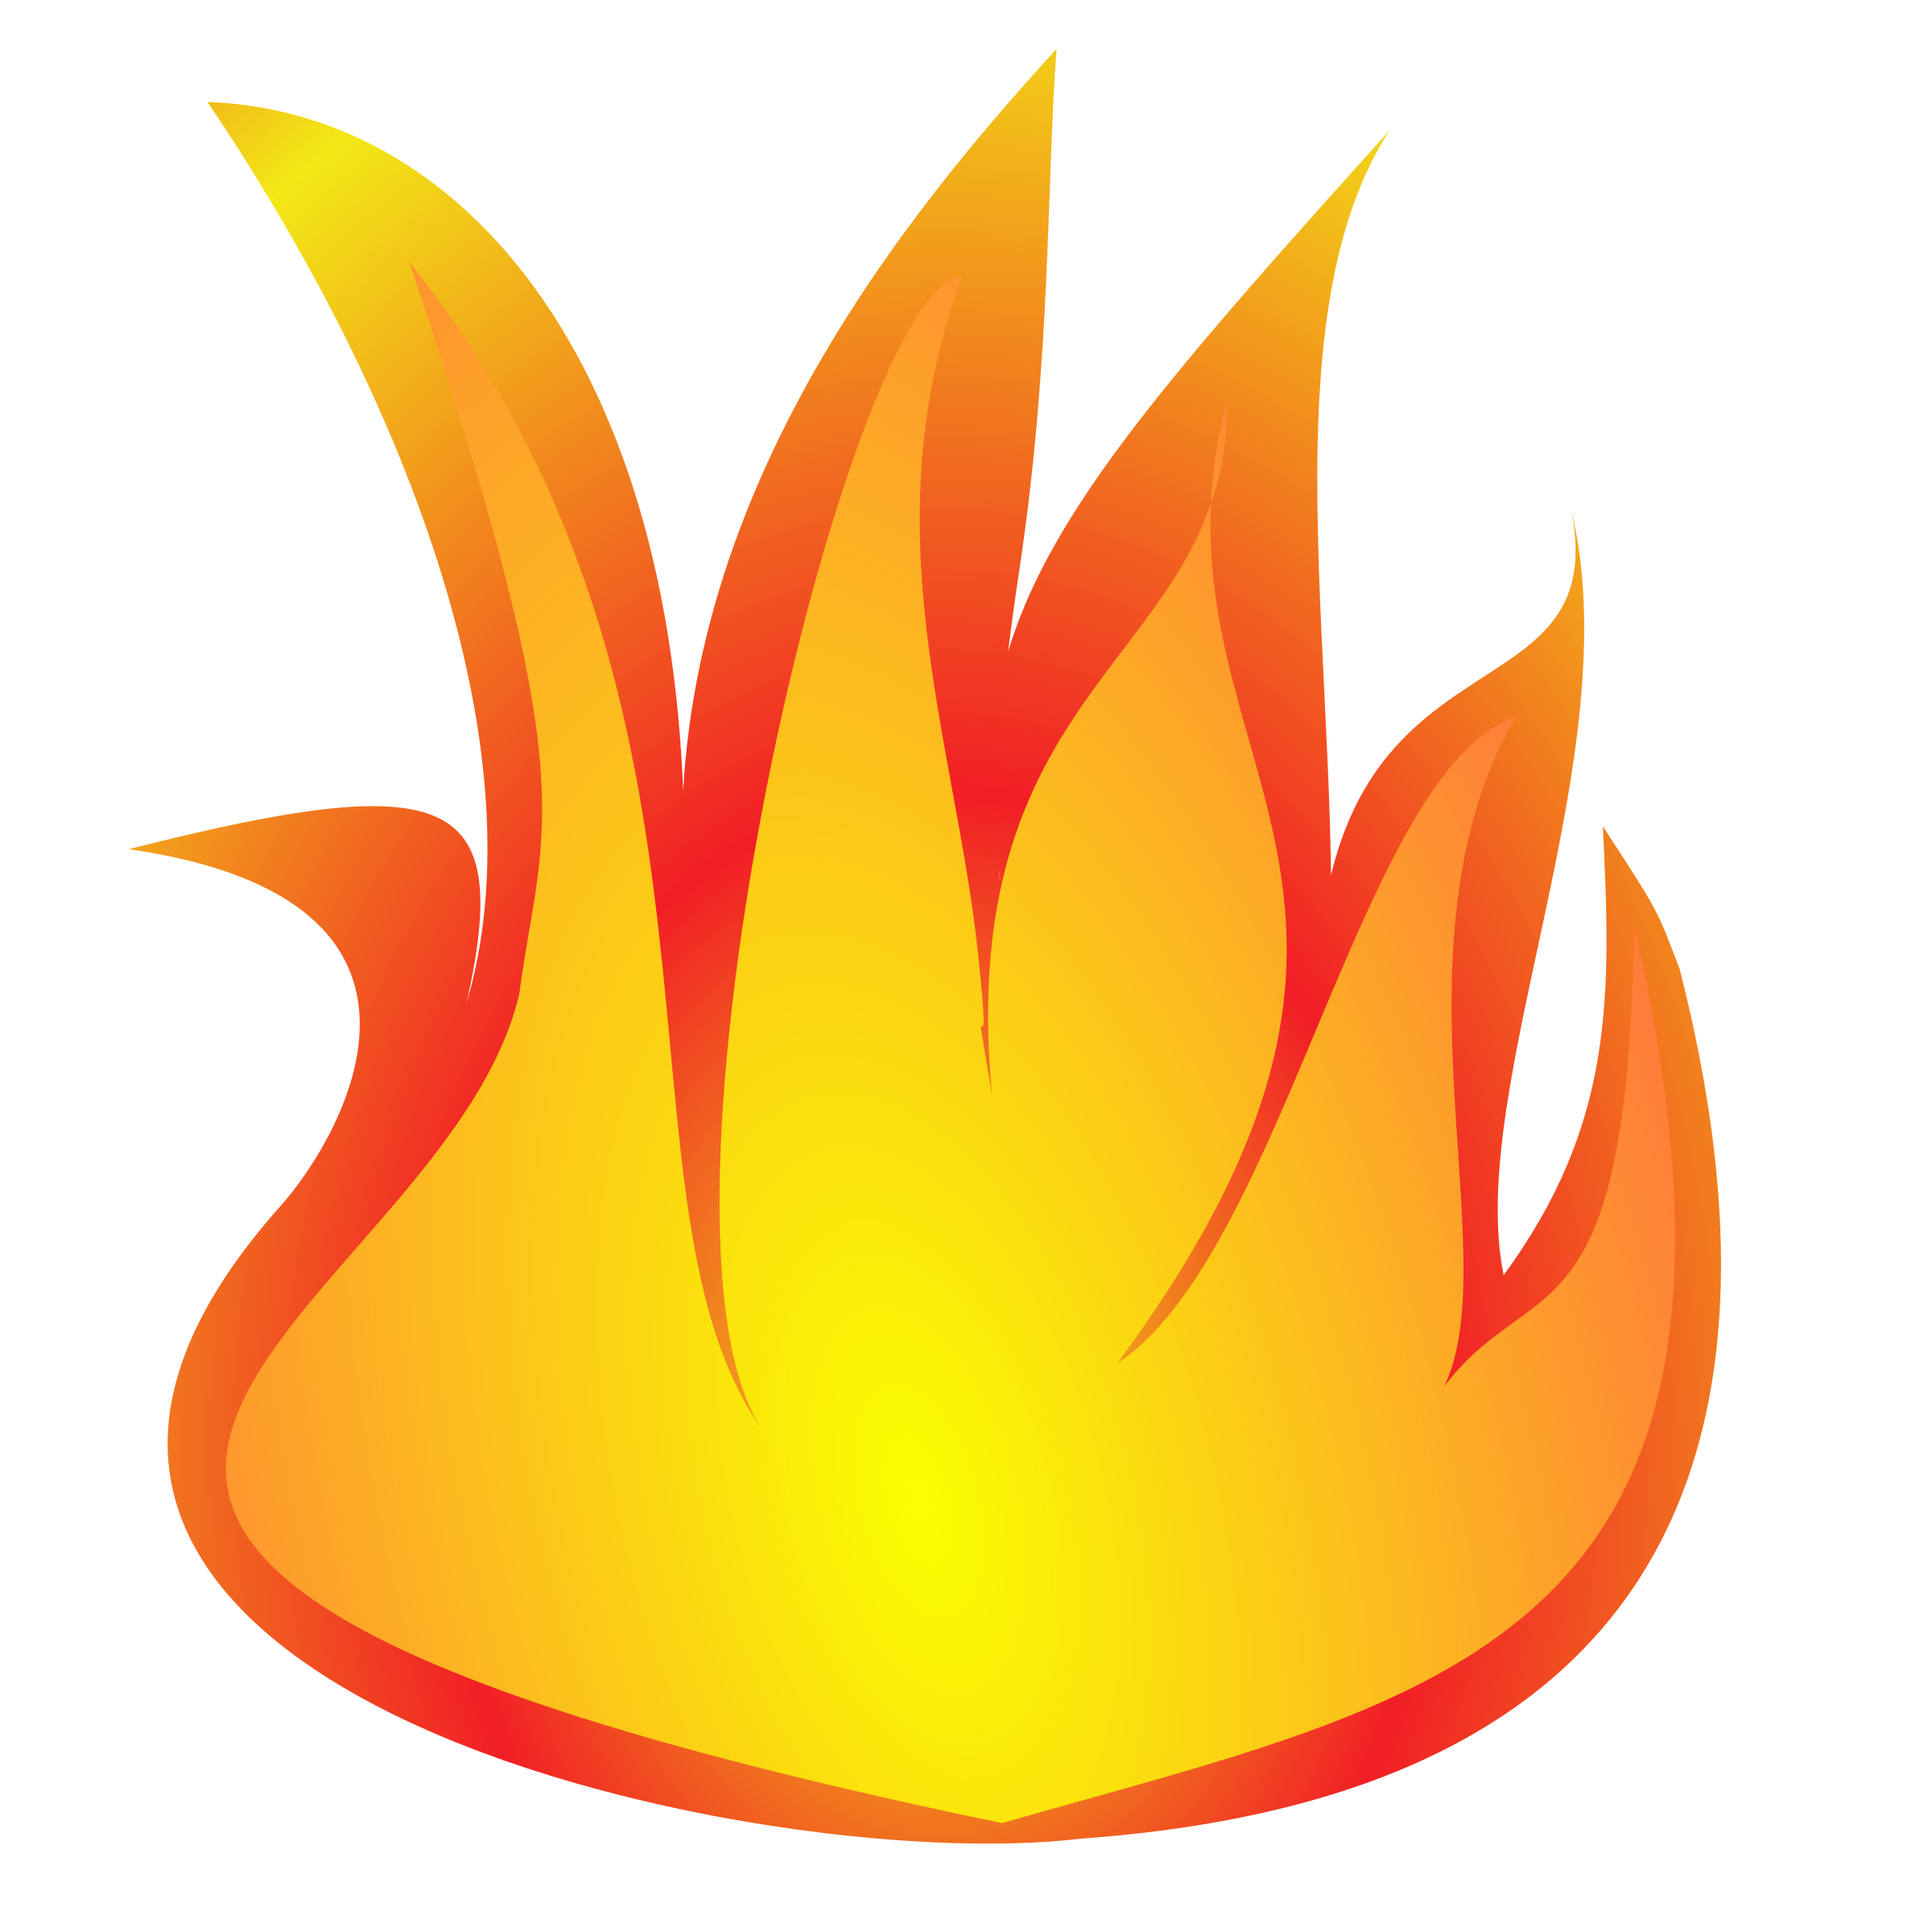 Flame clip art vector flame graphics clipart me 2.